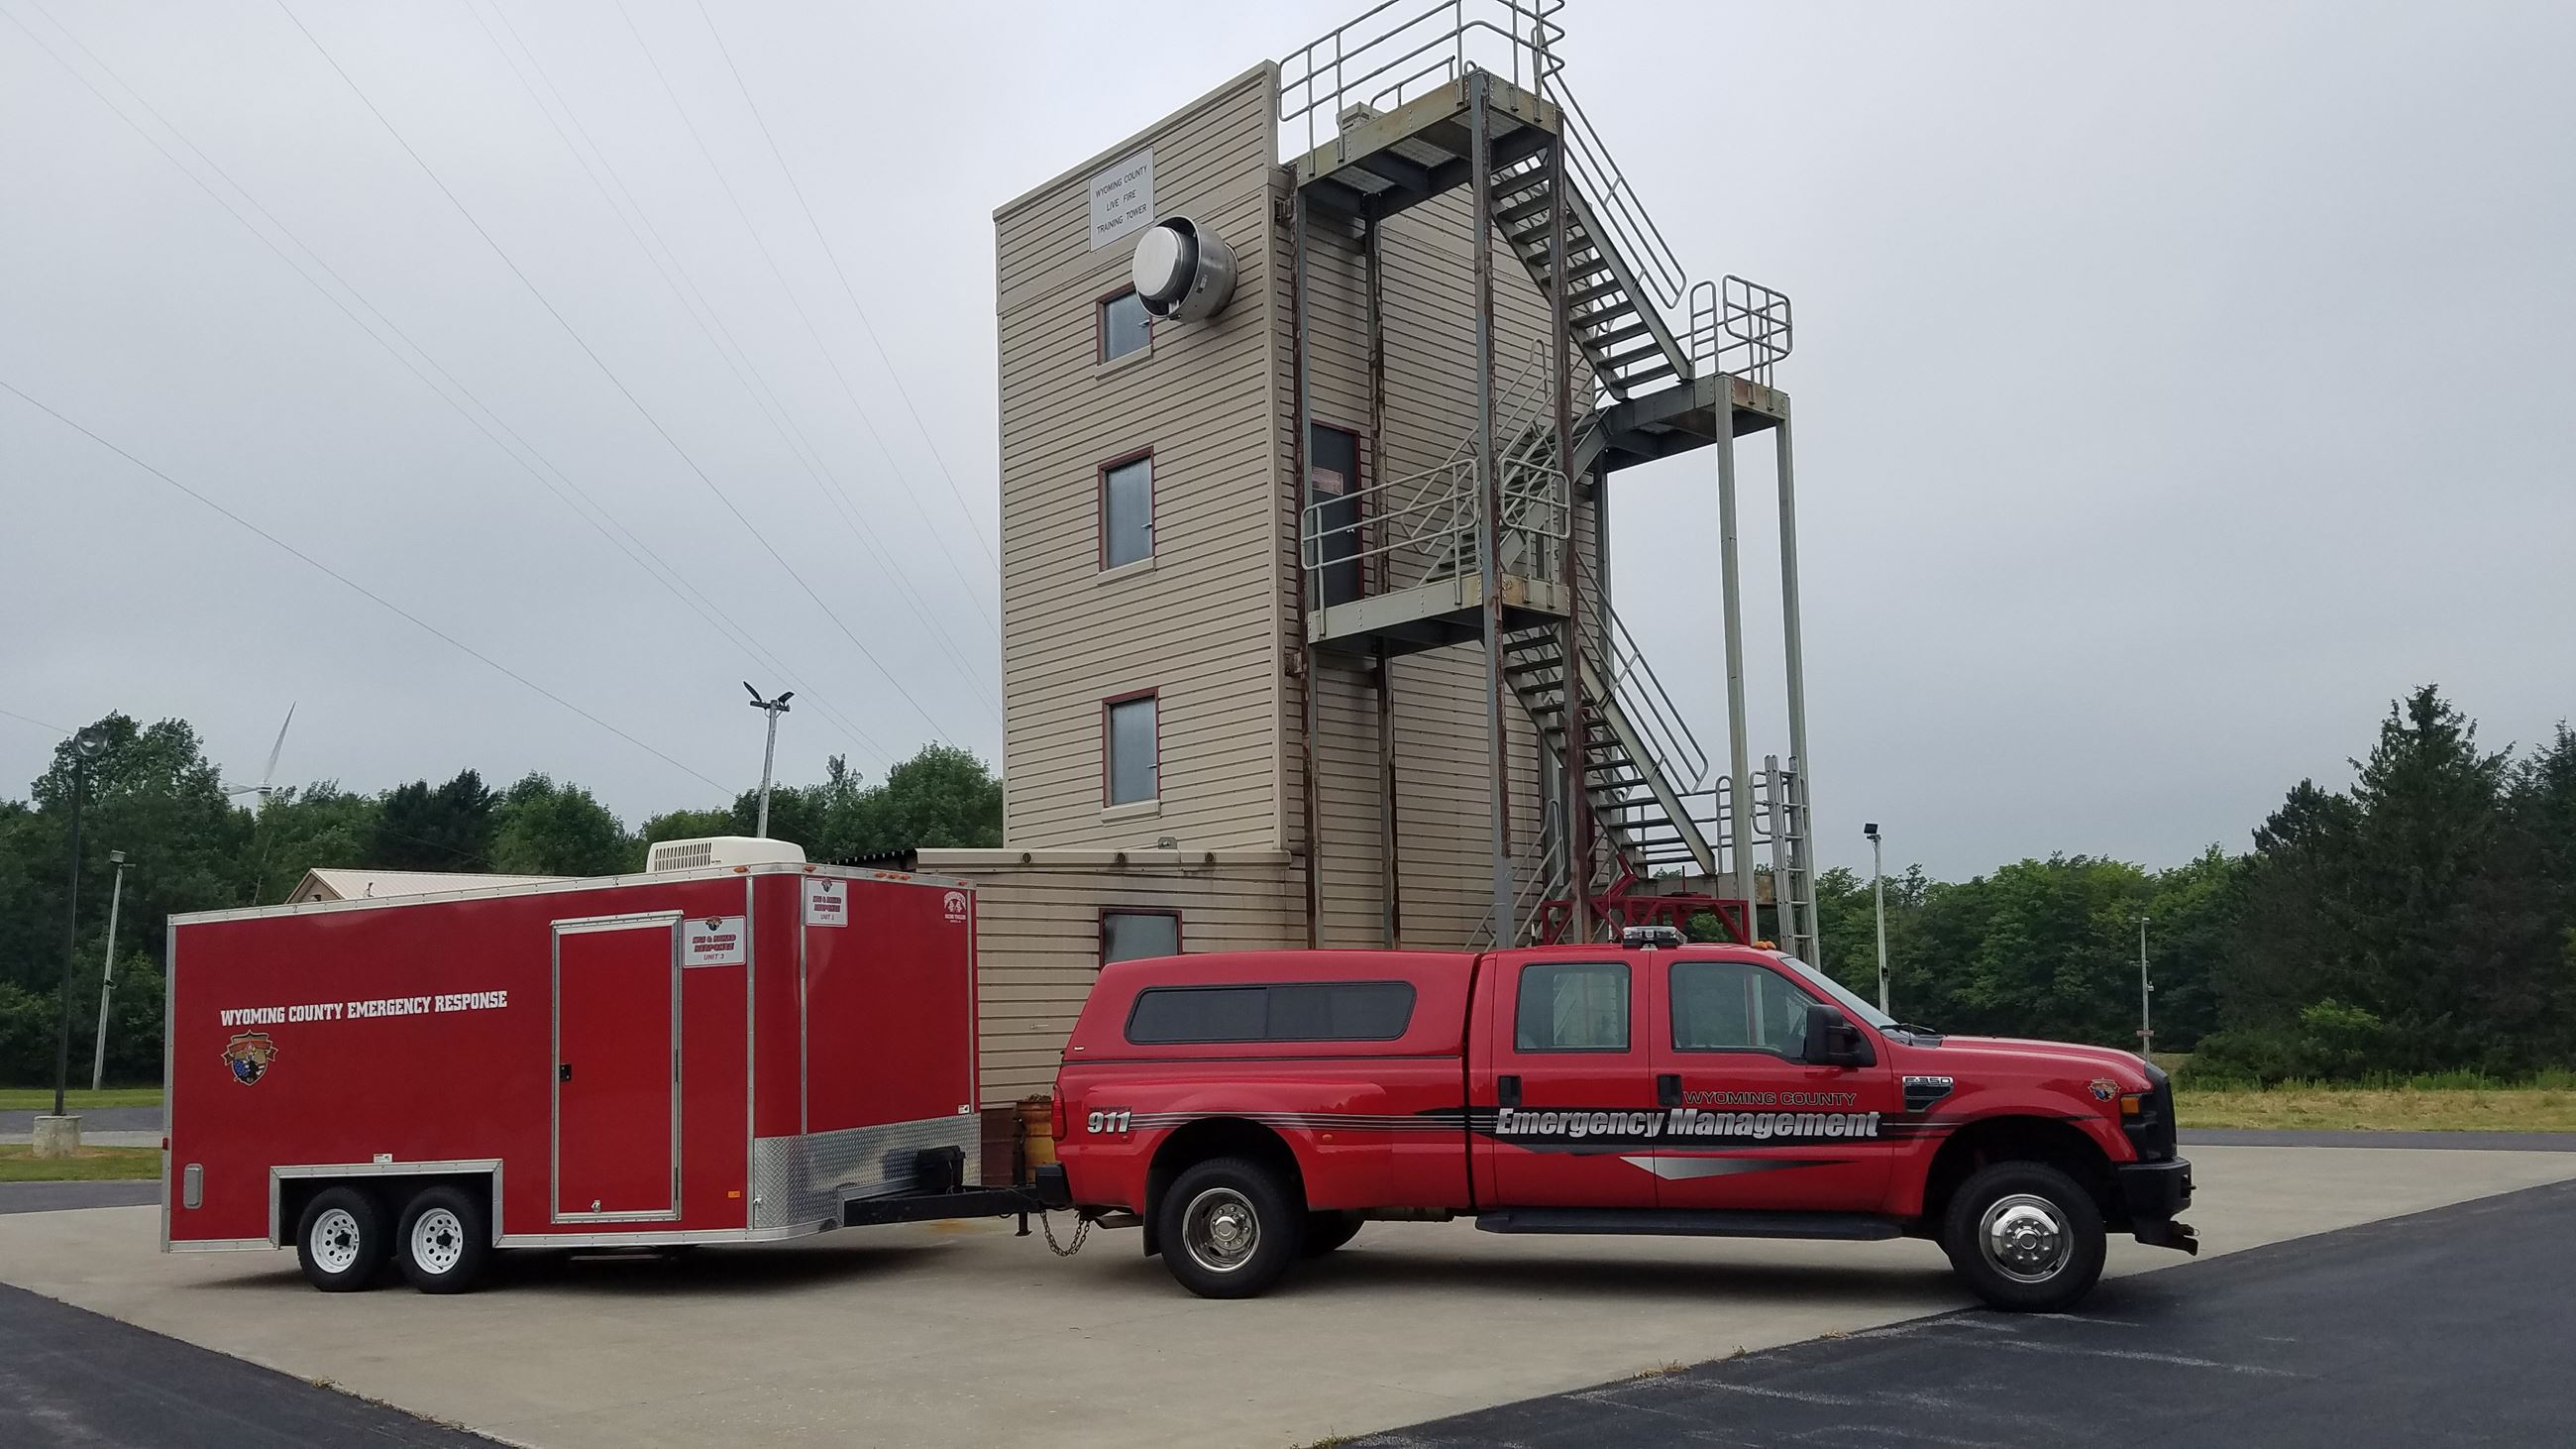 Equipment and Burn Tower